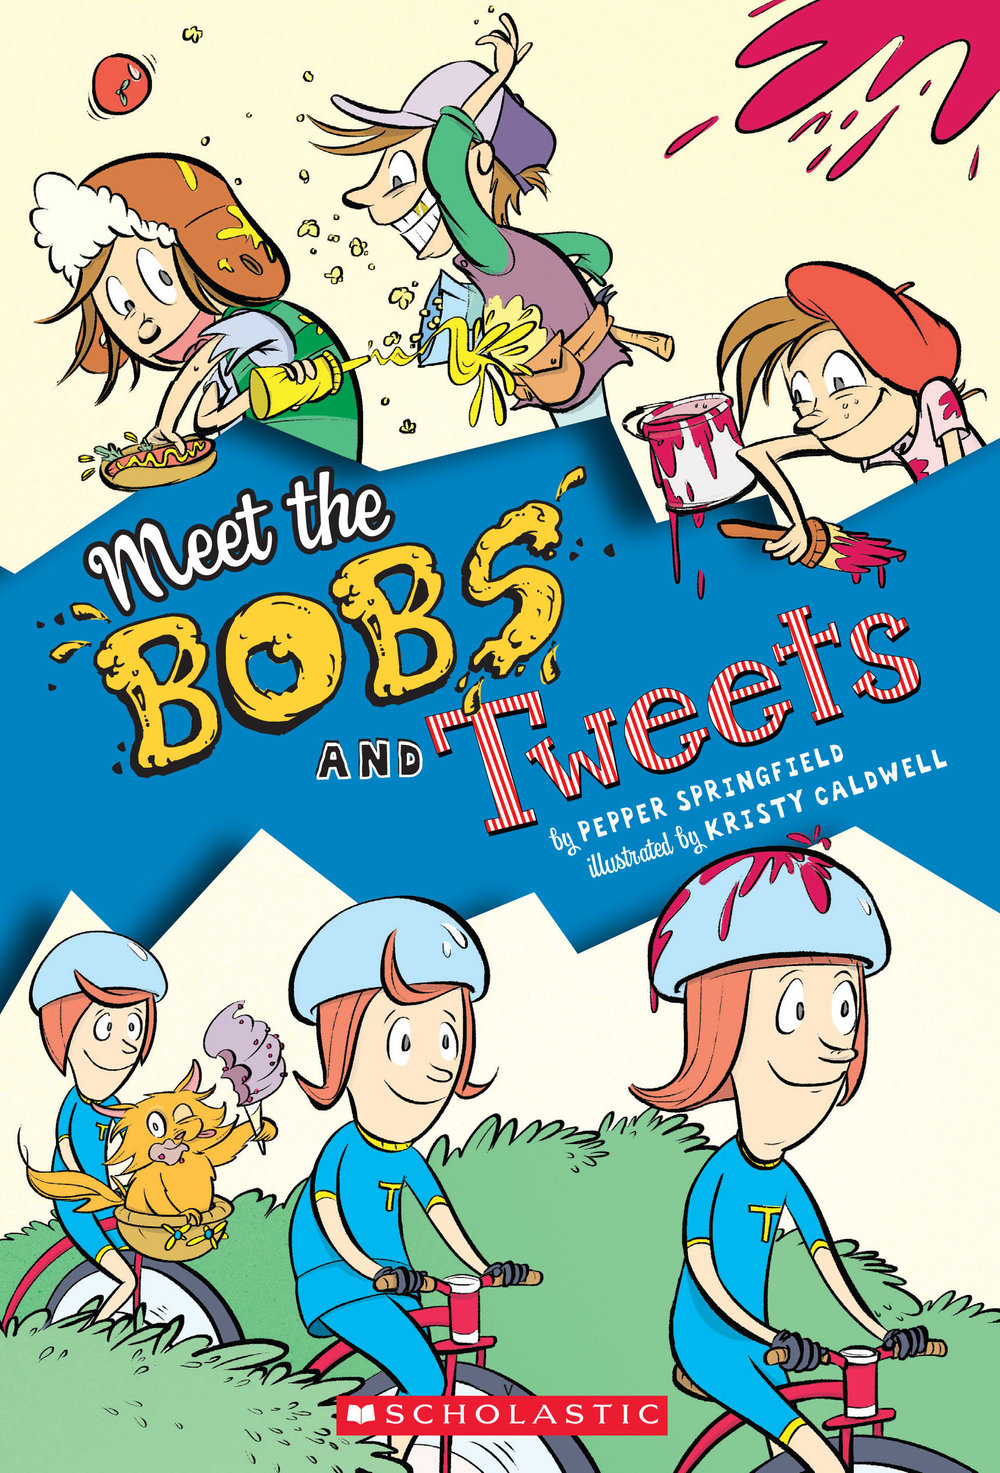 Bobs&Tweets Book 1 cover.jpg